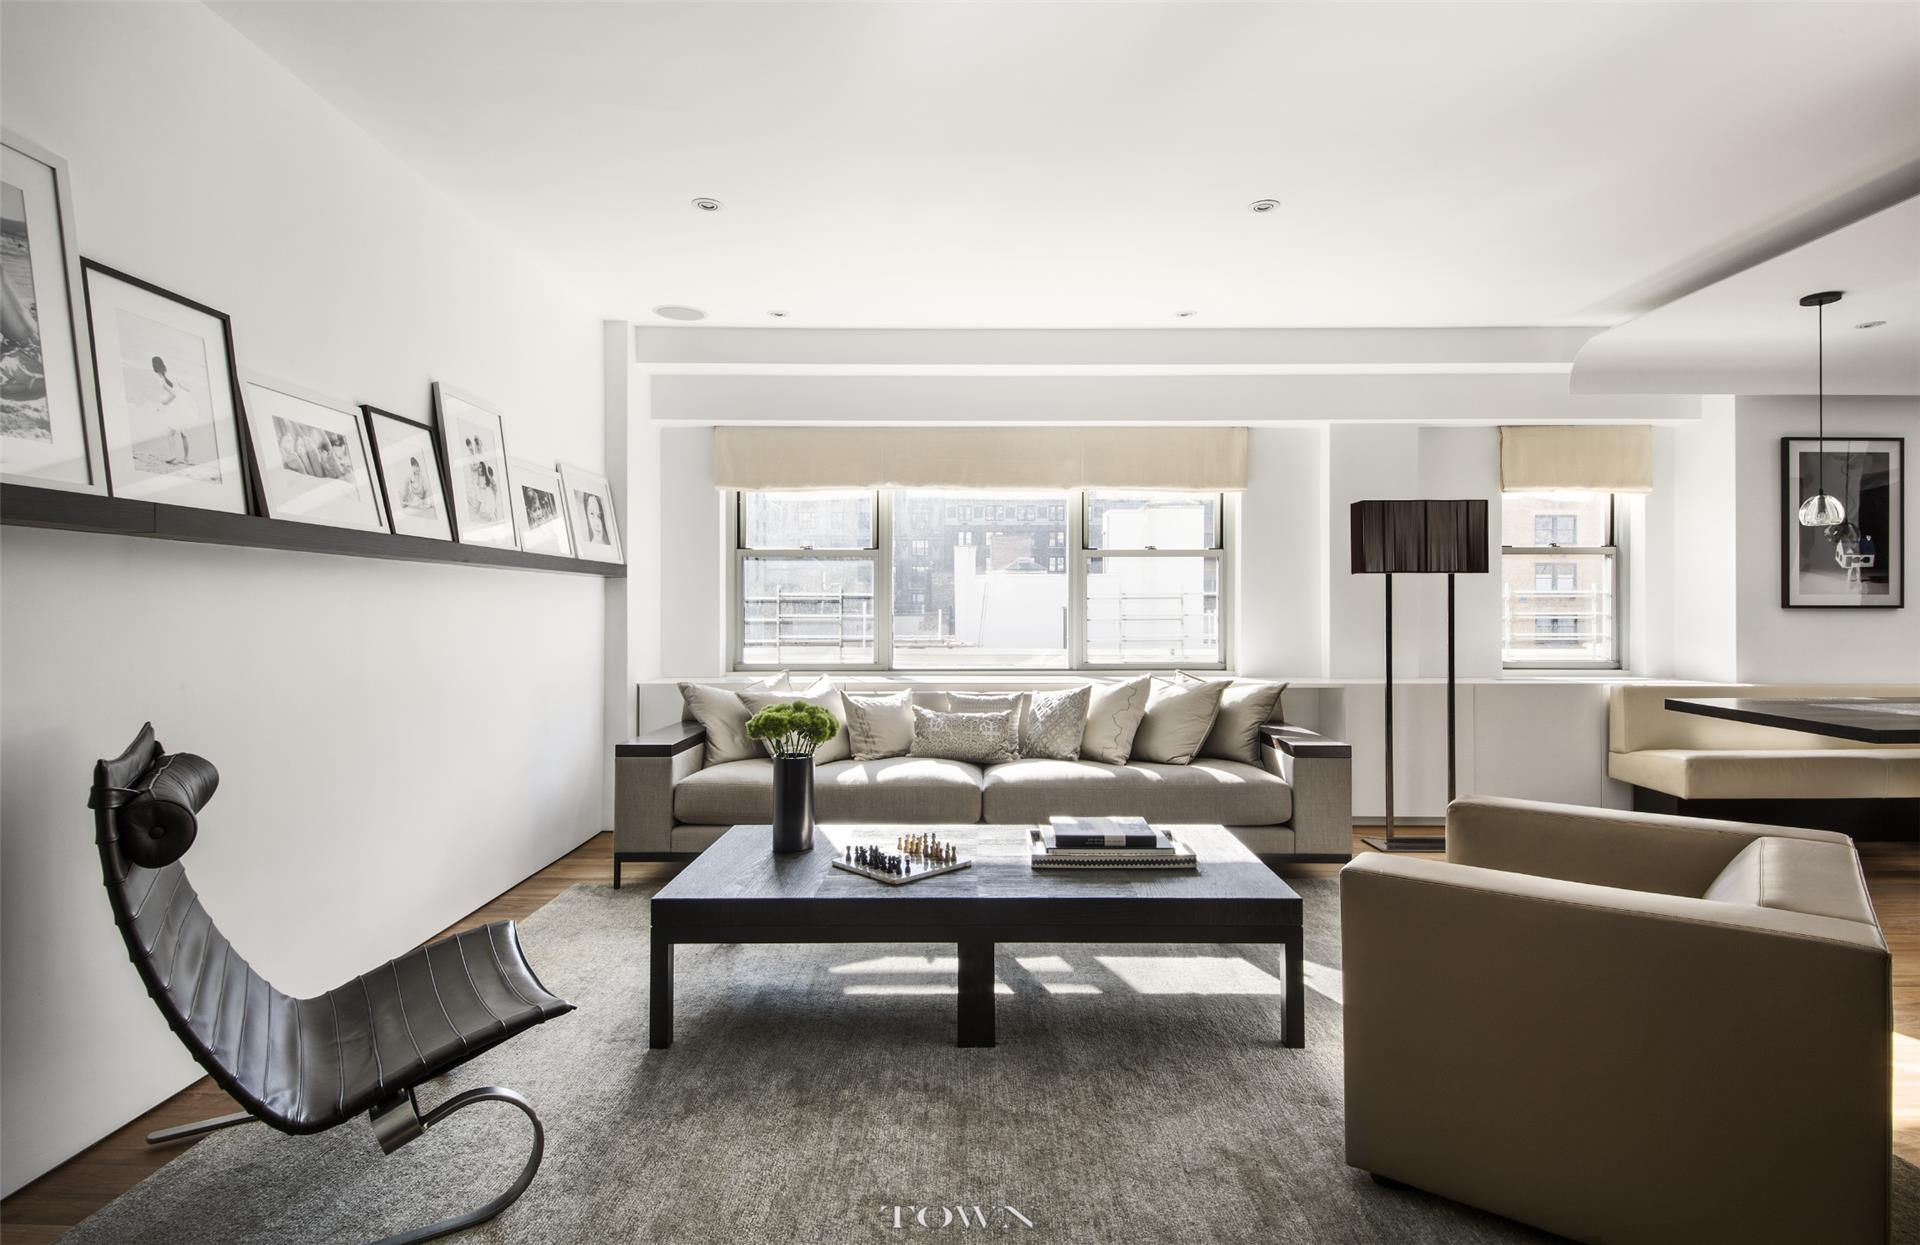 Co-op for Sale at The Parc, 55 East 87th Street, #9-Fgh 55 East 87th Street New York, New York 10128 United States